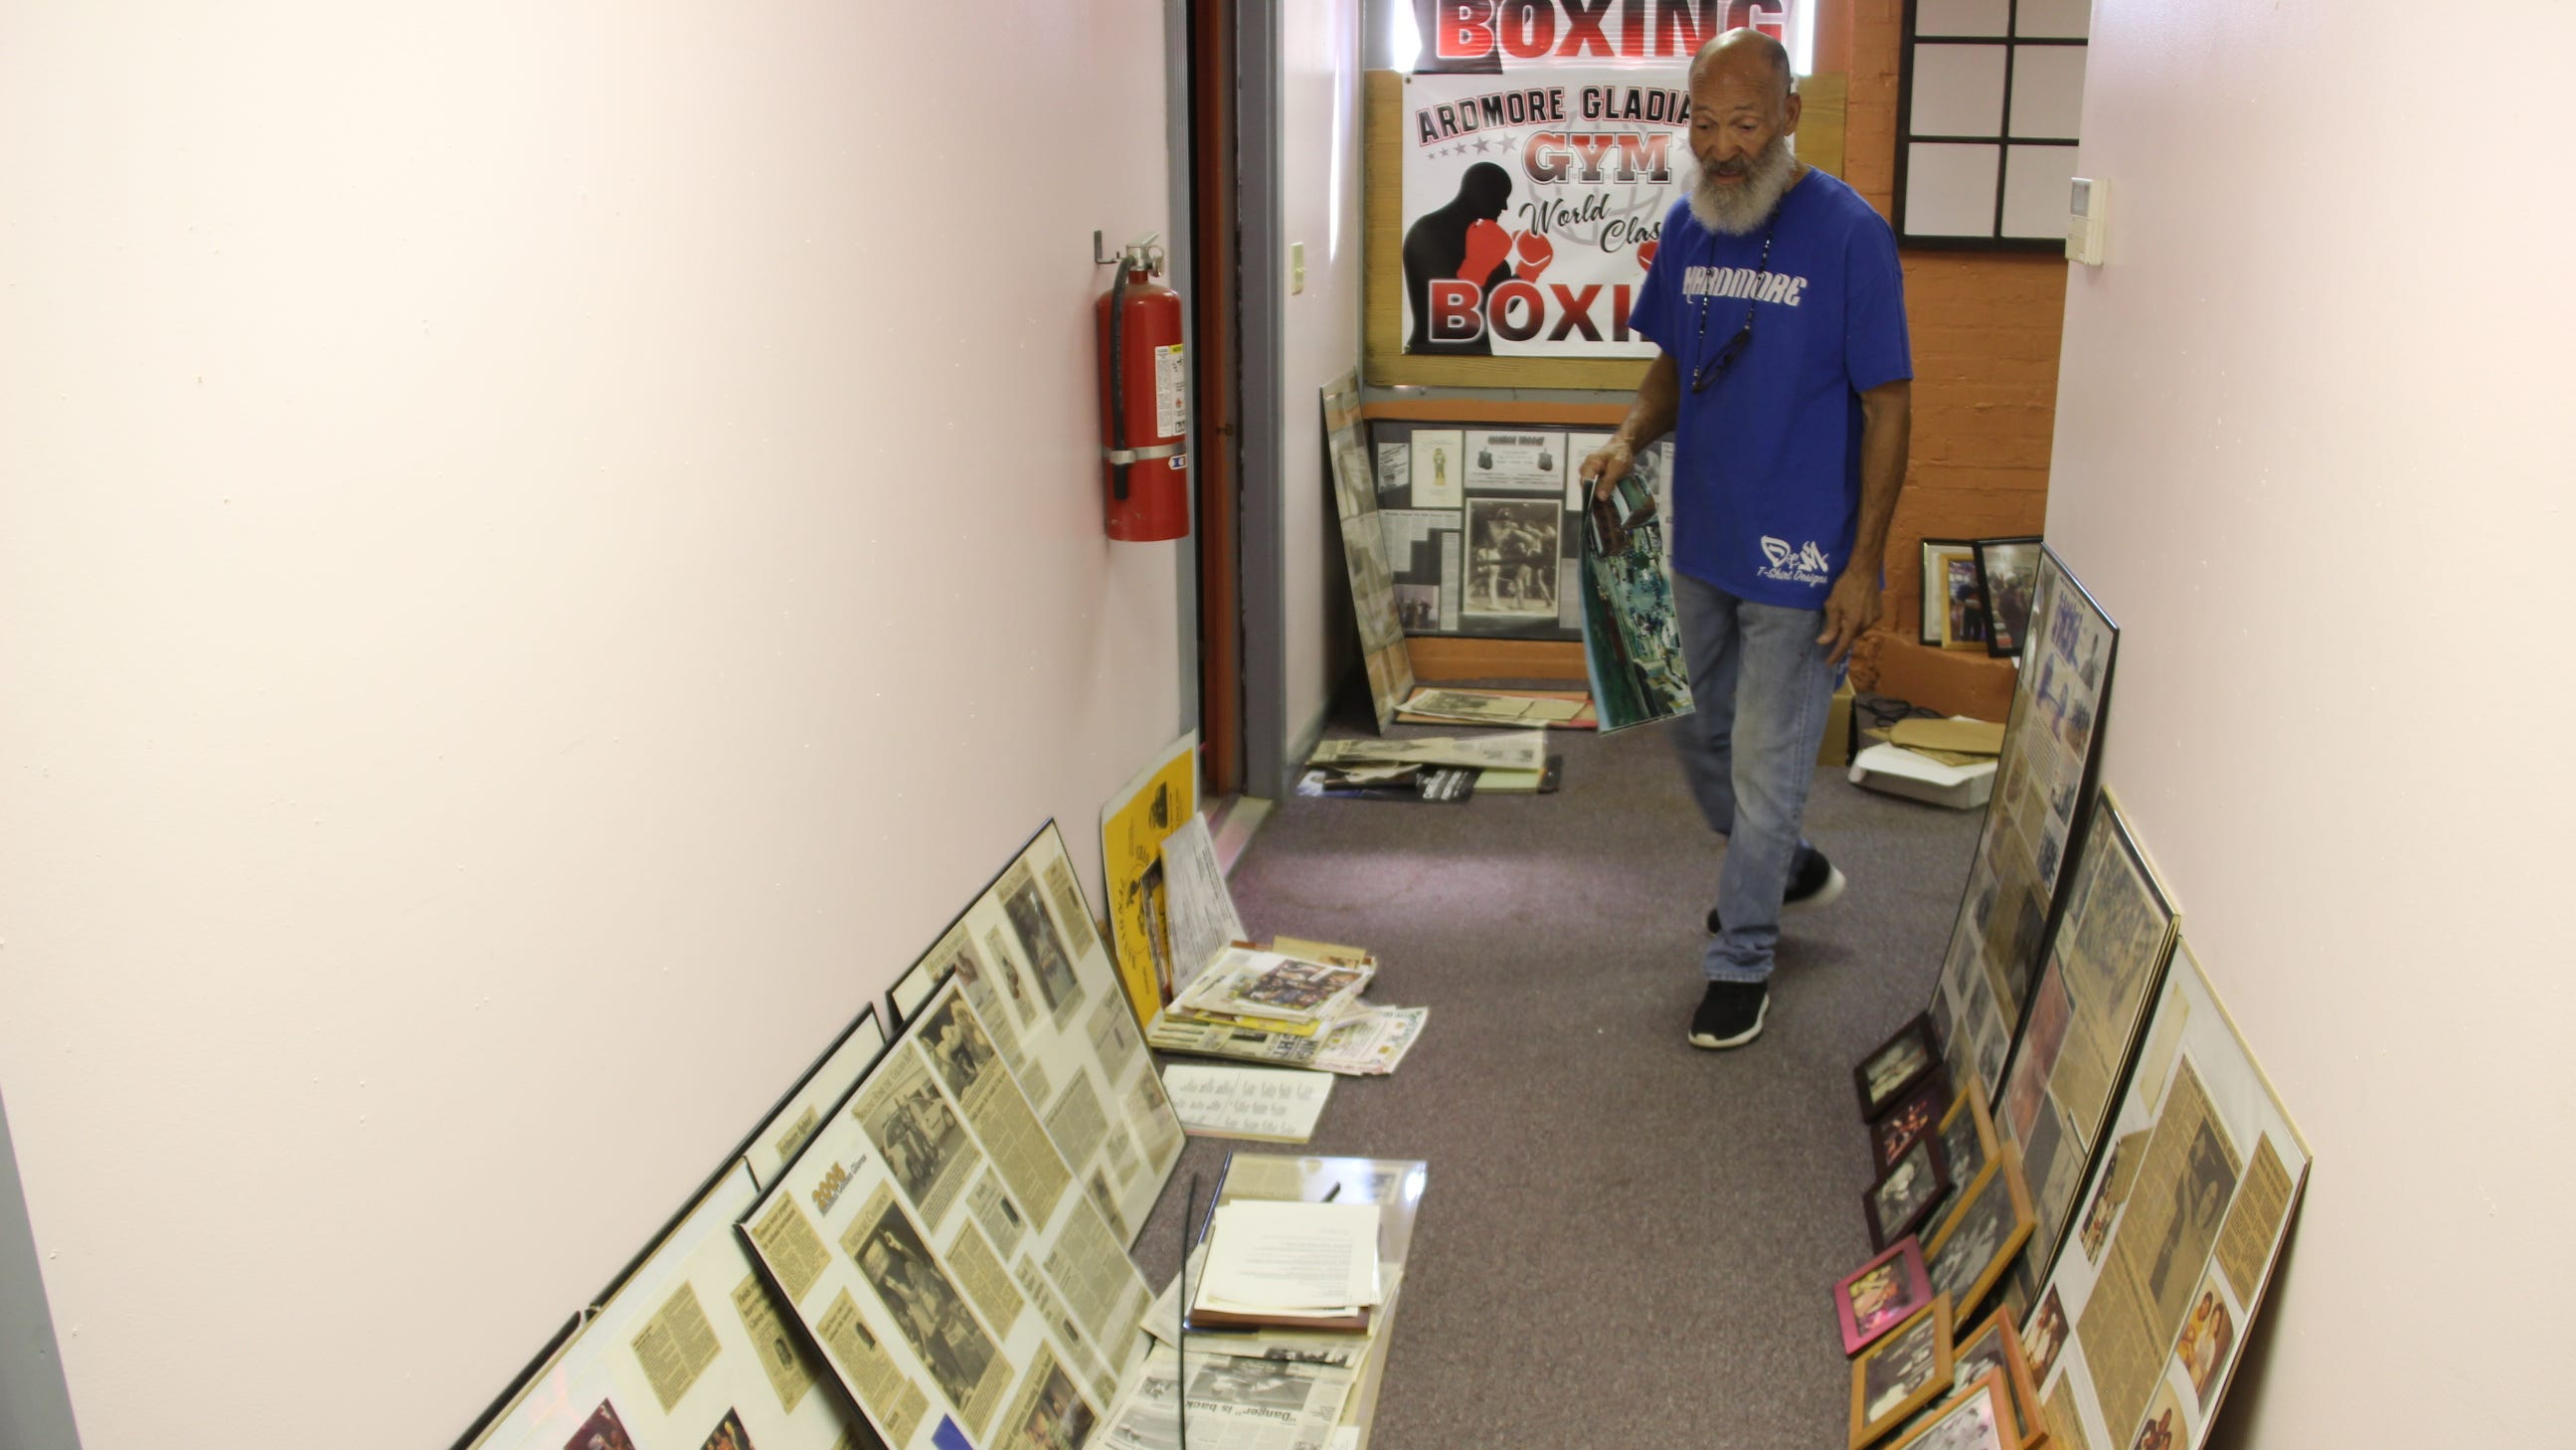 Garry Raymond walks down a hallway in Gladiator's Gym filled with more than 40 years of press clippings from fighters he's trained.